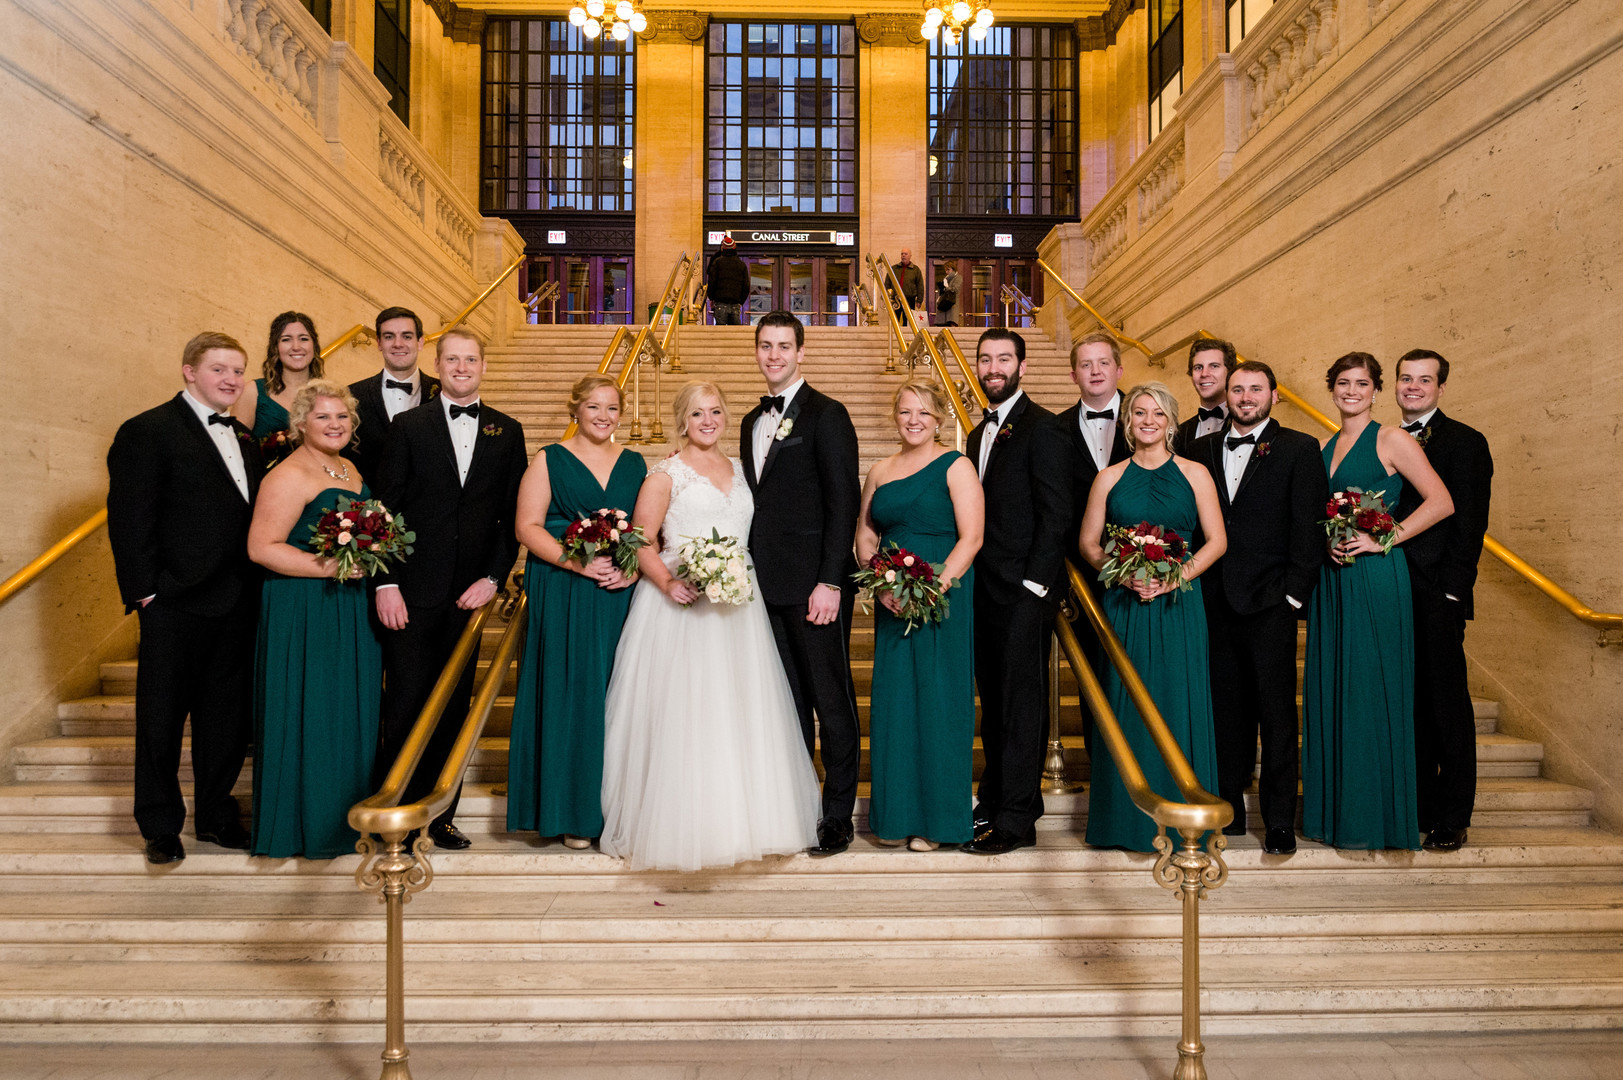 Romantic Chicago winter wedding with Christmas colors captured by Julia Franzosa Photography. See more winter wedding ideas at CHItheeWED.com!